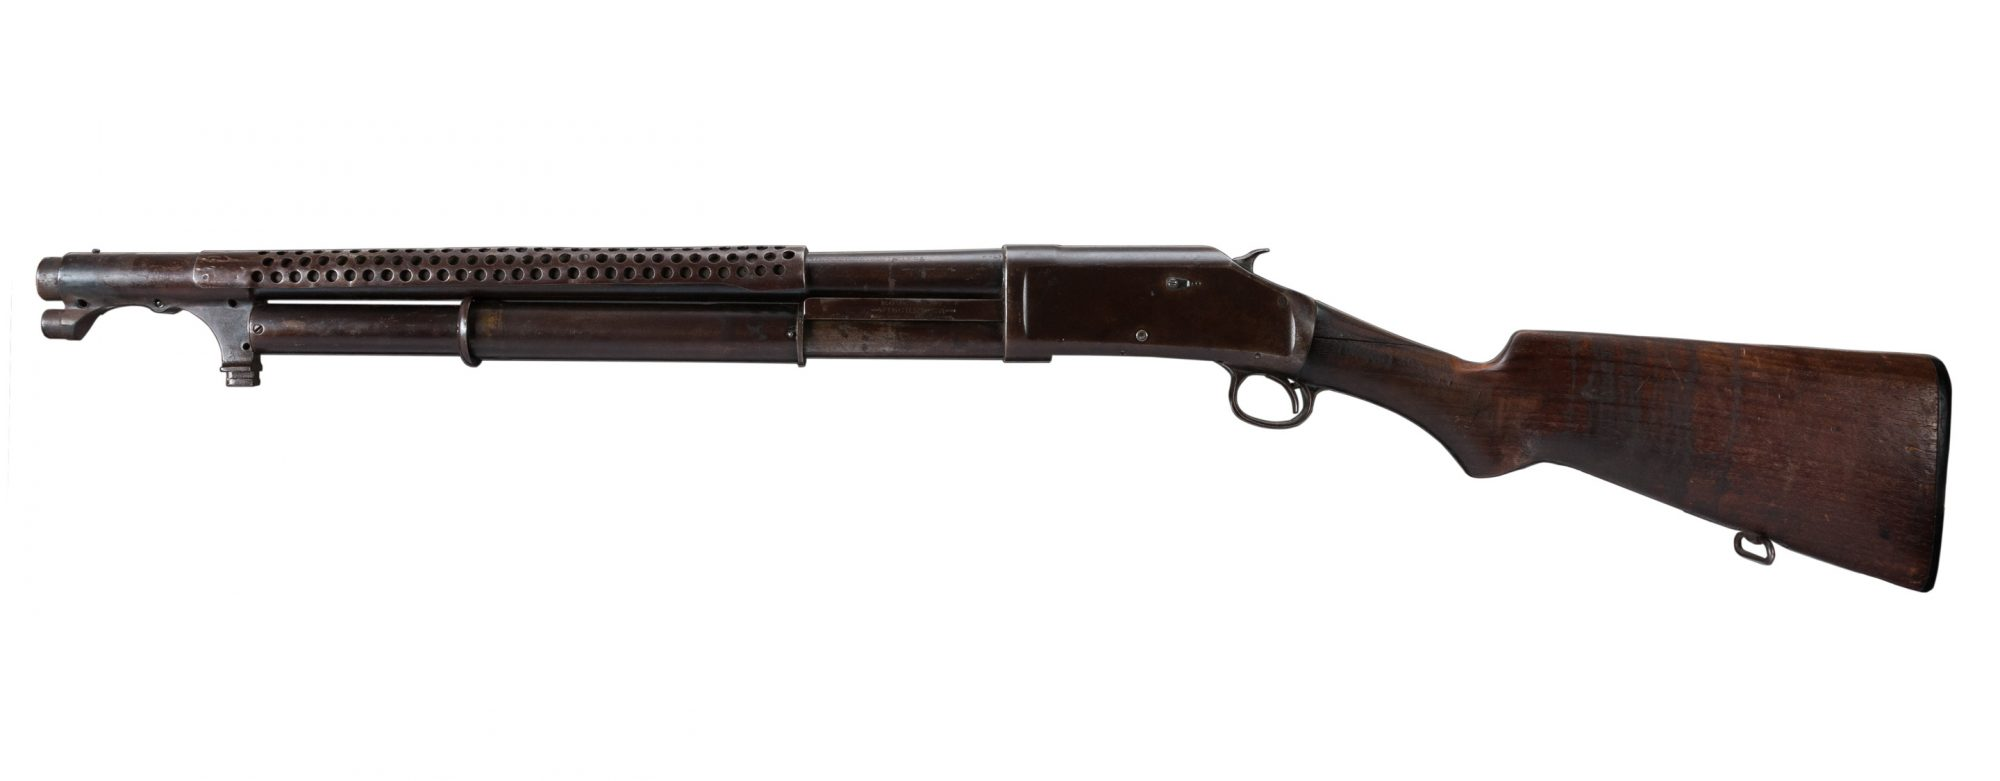 1919 Winchester 1897 before restoration